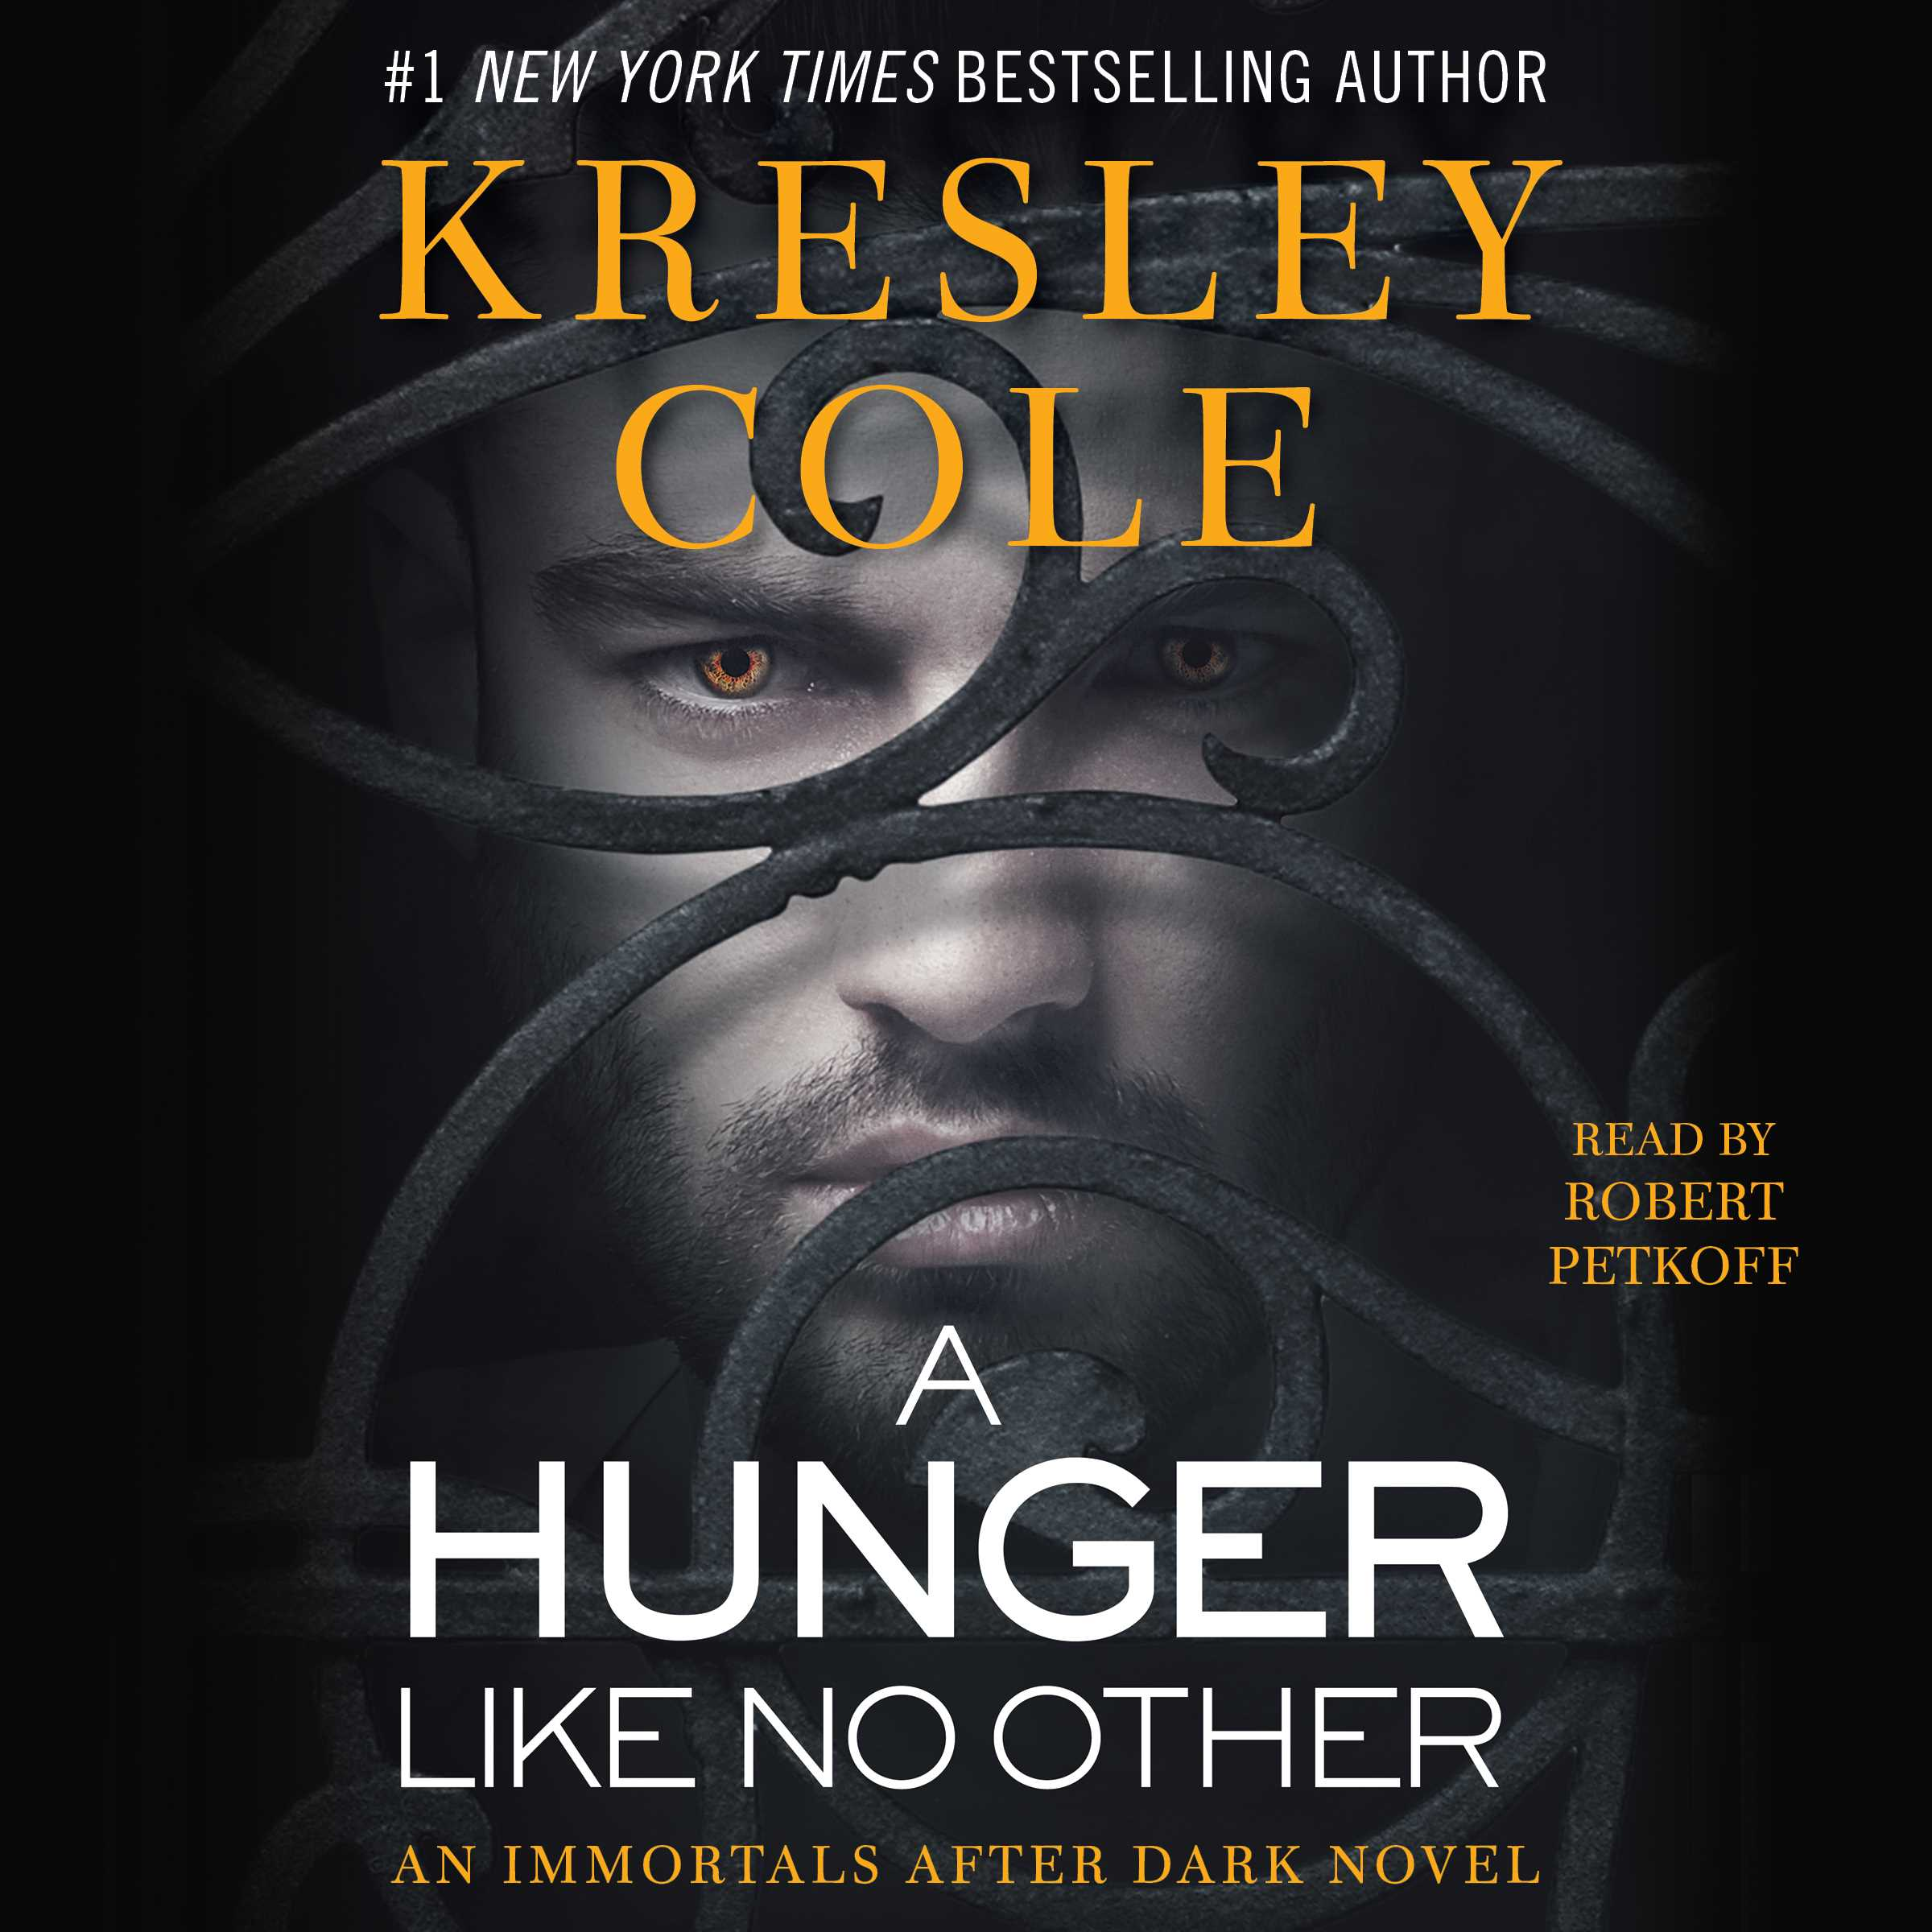 A hunger like no other 9781442345515 hr